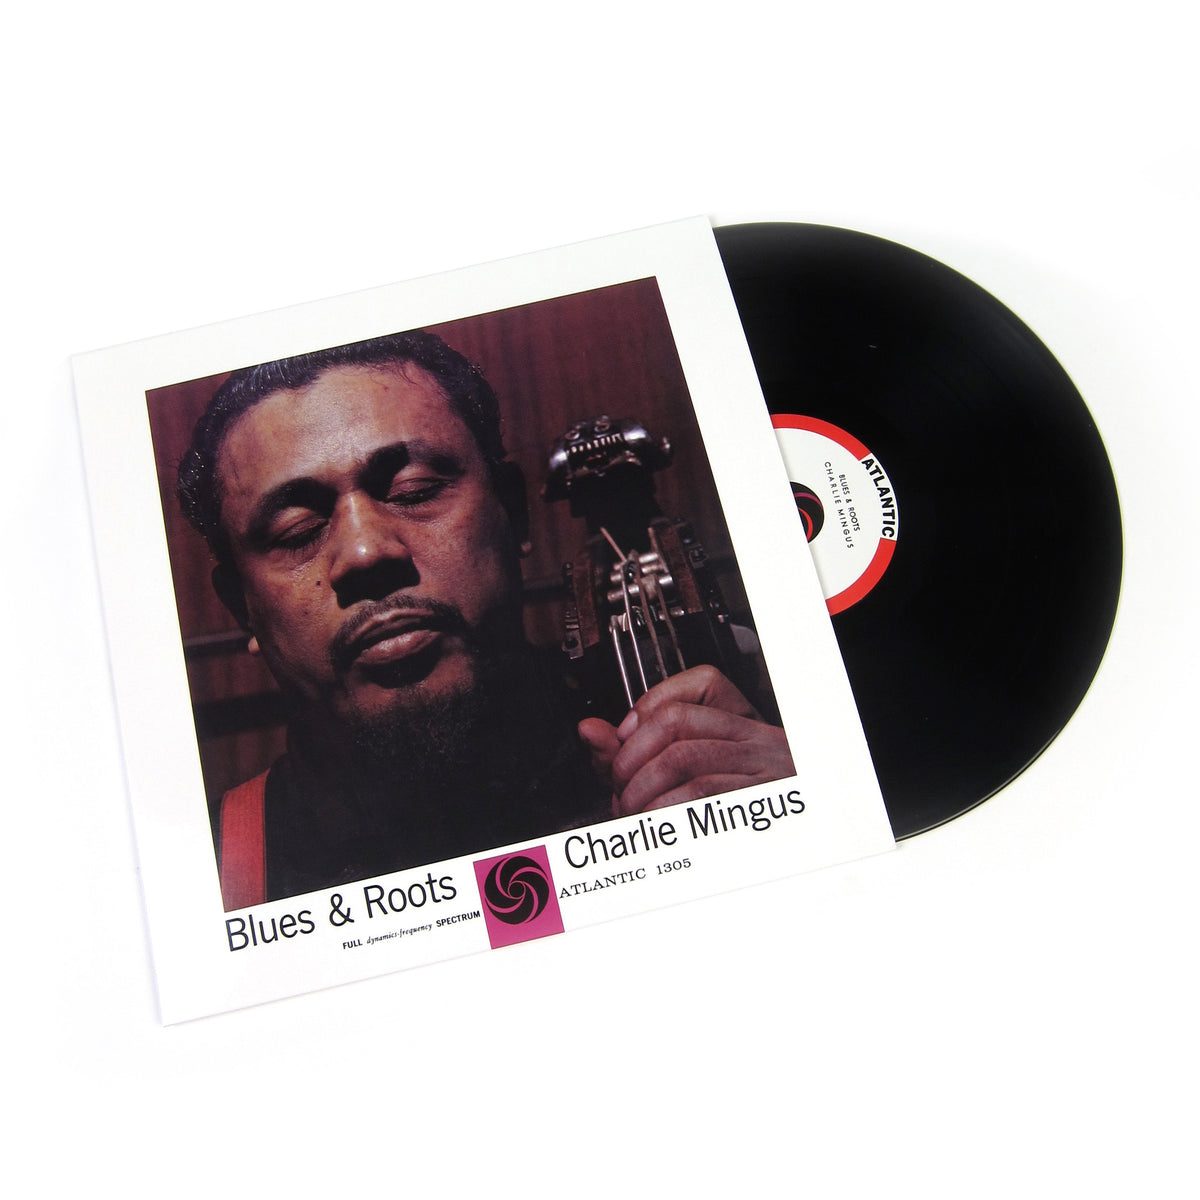 Charles Mingus: Blues & Roots (Mono, 180g) Vinyl LP